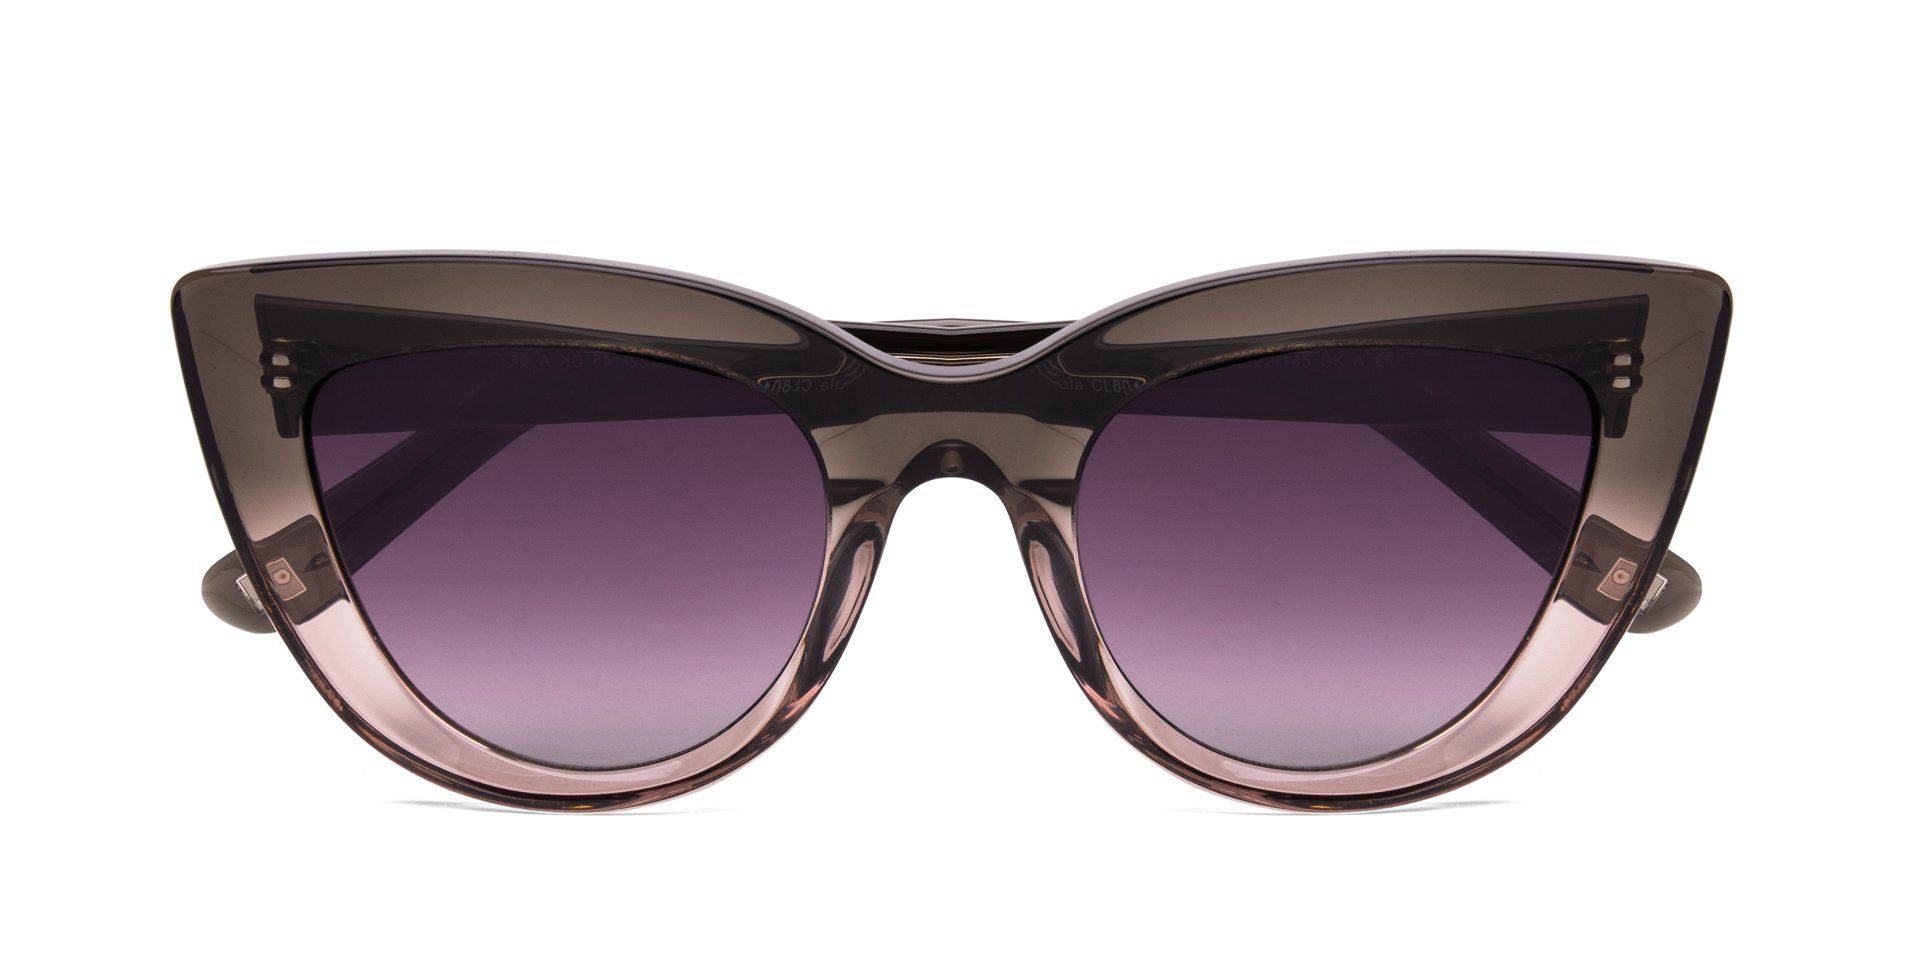 FRAME Transparent Grey to Pink LENS Gradient Smoke